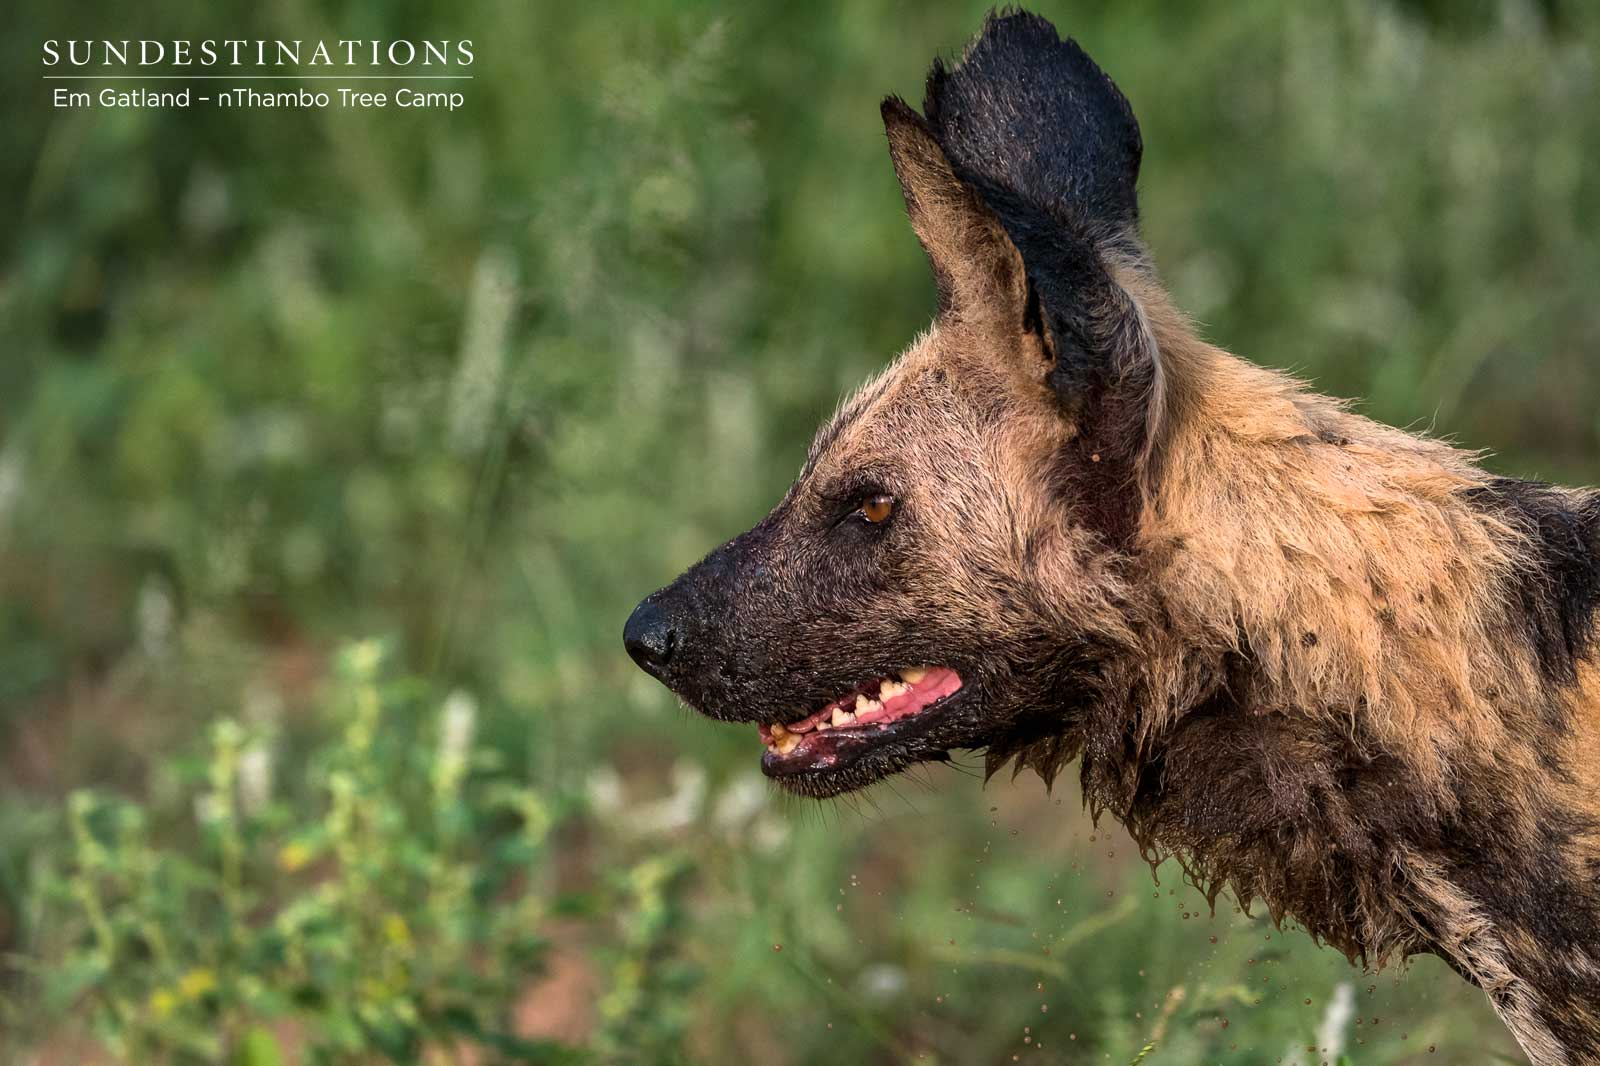 Wild Dogs at nThambo Tree Camp